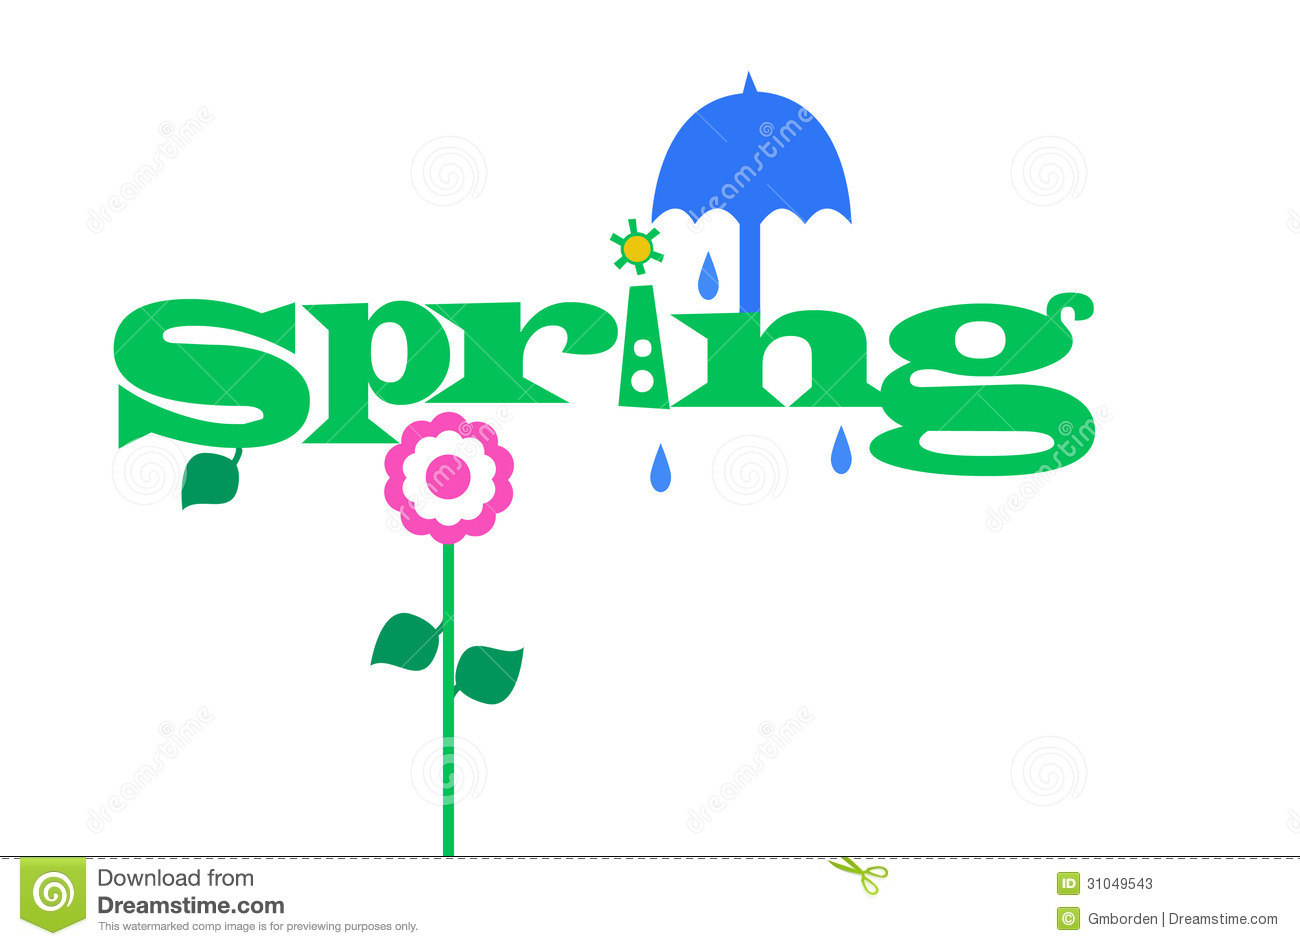 clipart spring showers - photo #5